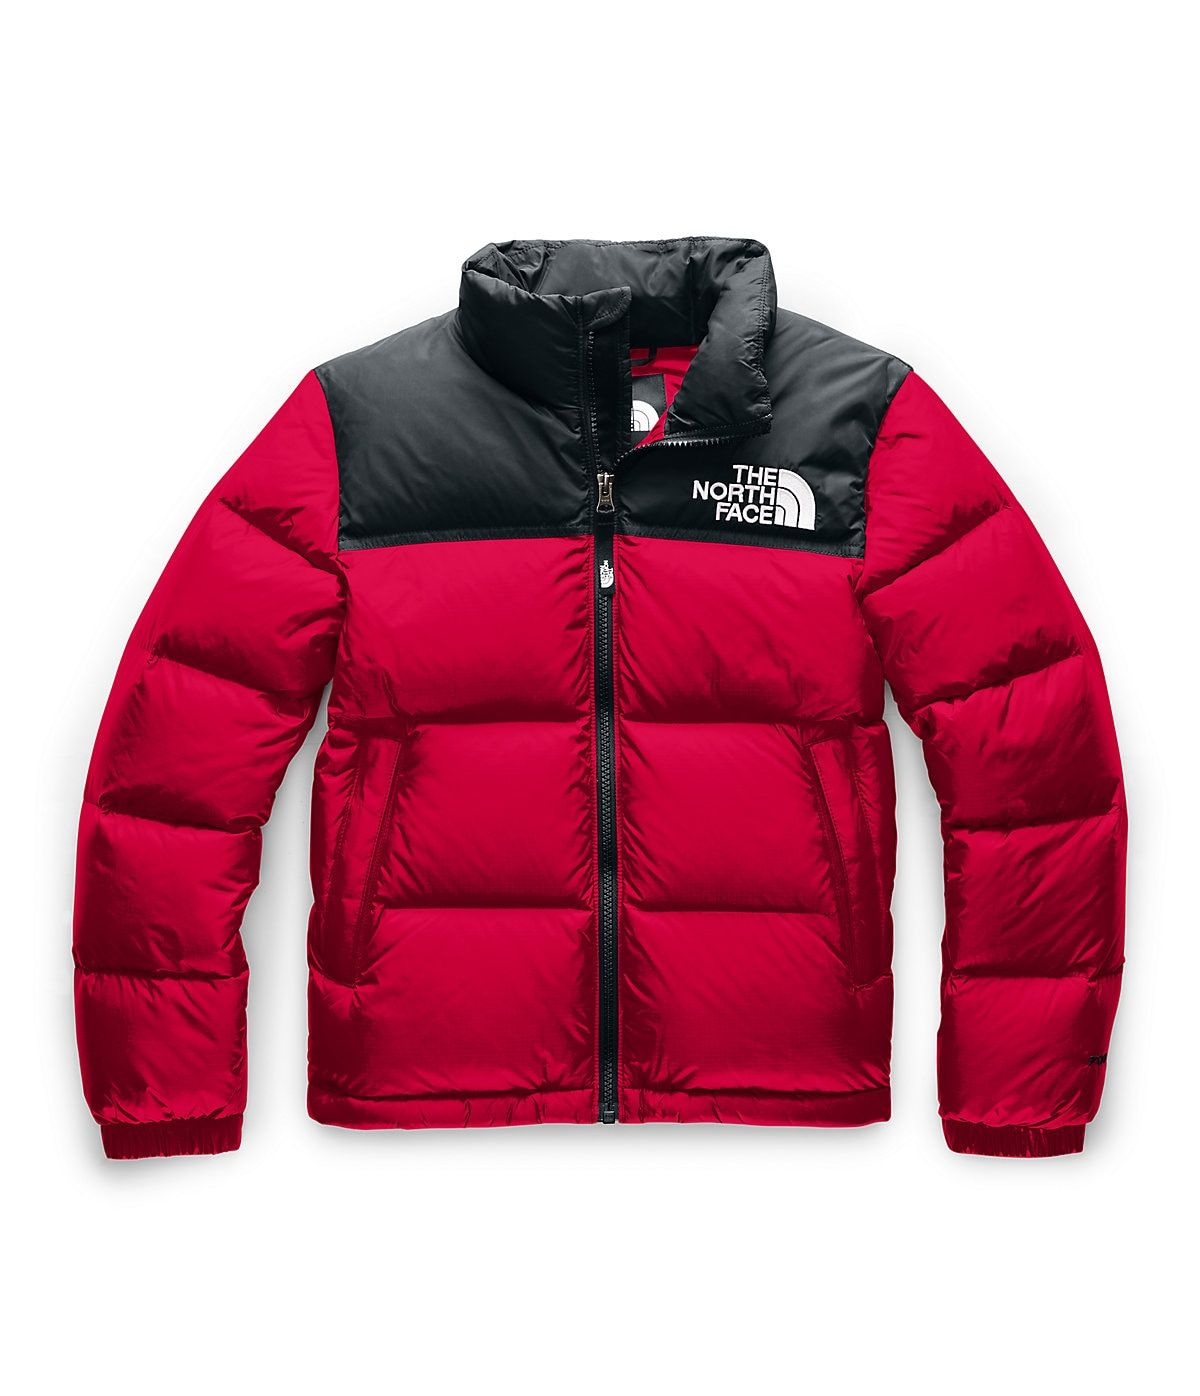 Youth 1996 Retro Nuptse Jacket The North Face In 2021 Red North Face Jacket North Face Puffer Jacket Down Jacket [ 1396 x 1200 Pixel ]